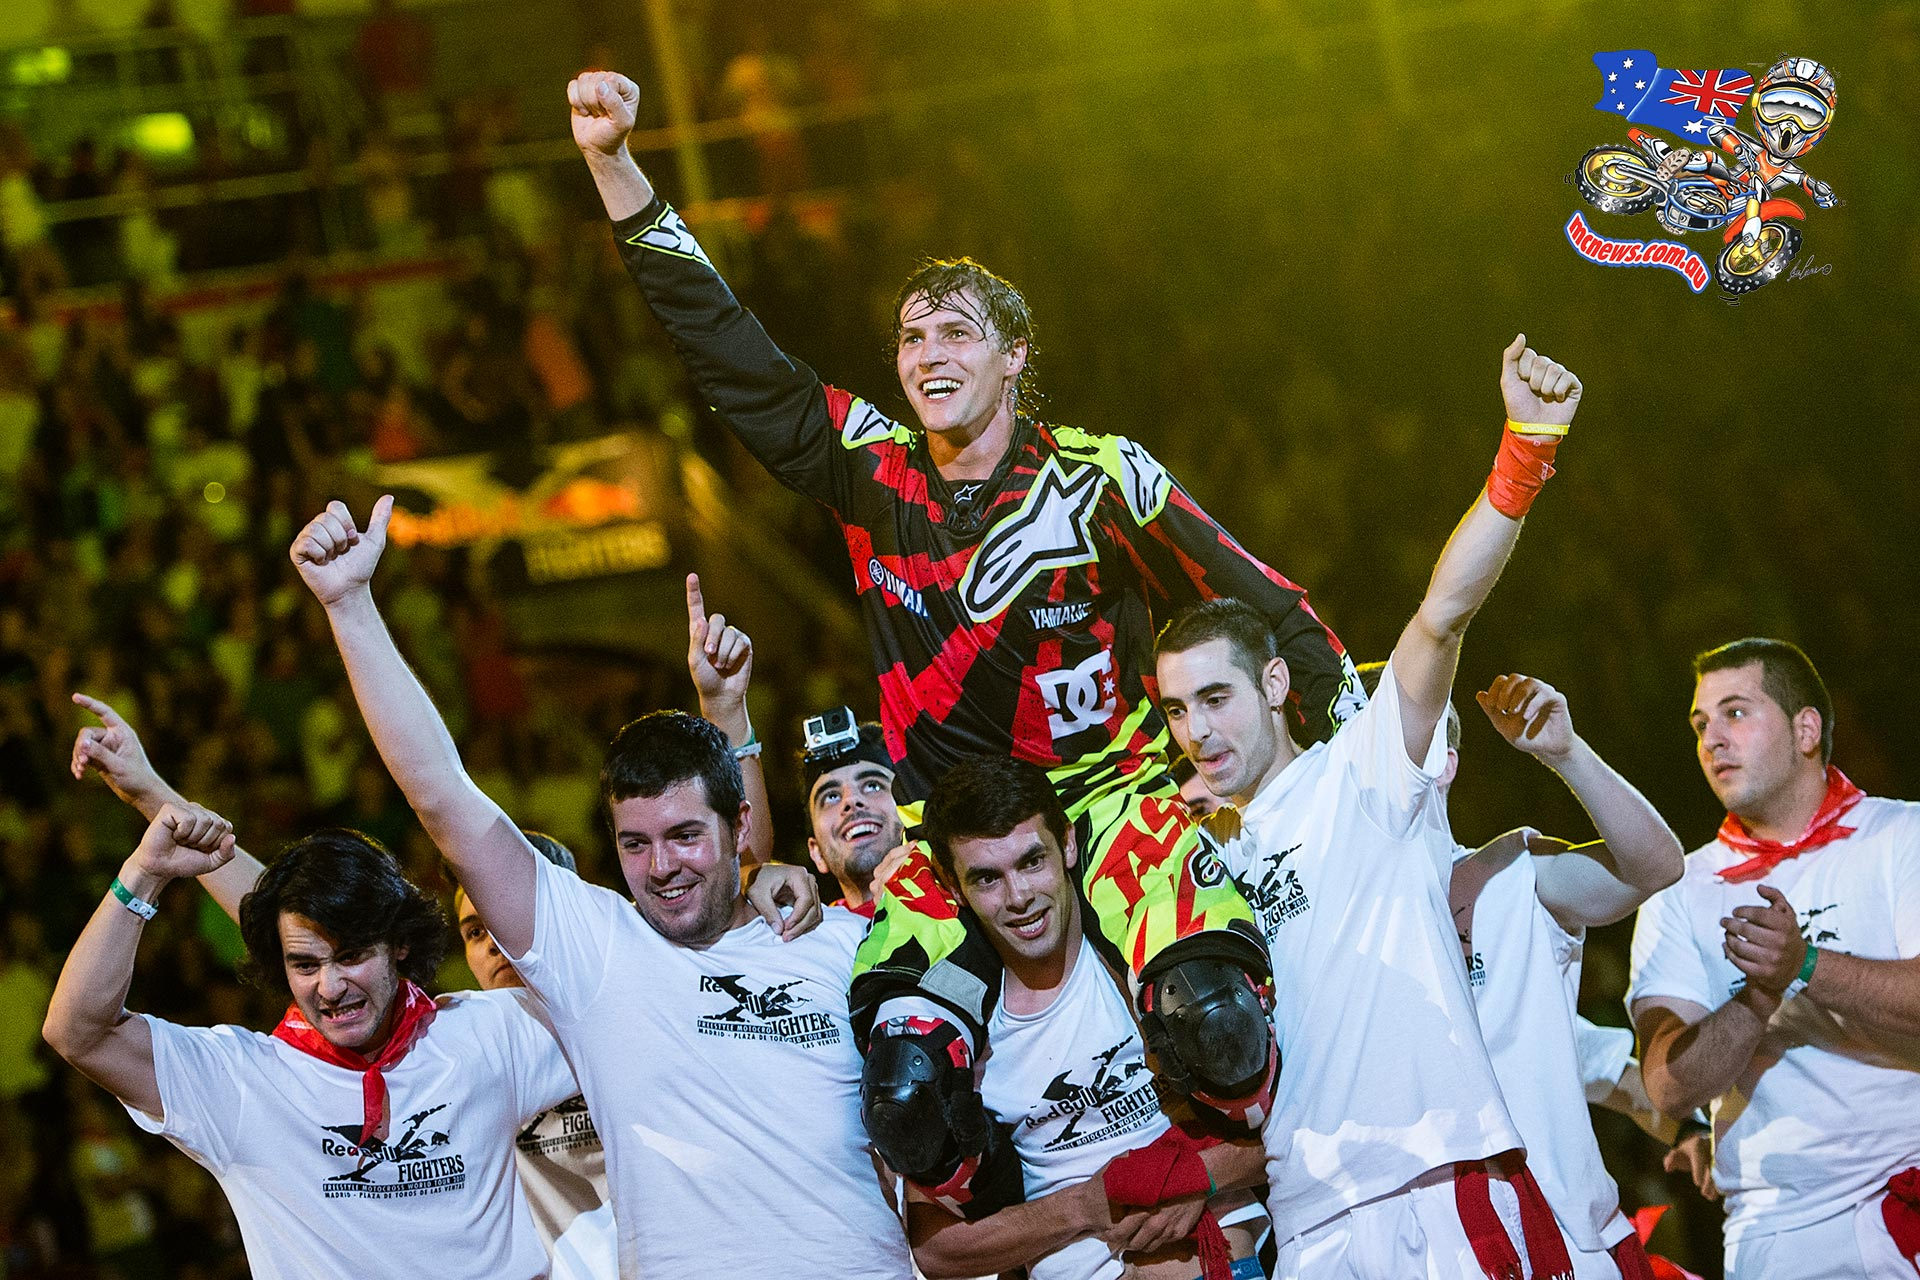 Tom Pagès of France celebrates his victory during the finals of the third stage of the Red Bull X-Fighters World Tour at the Plaza de Toros de Las Ventas in Madrid, Spain on July 10, 2015.